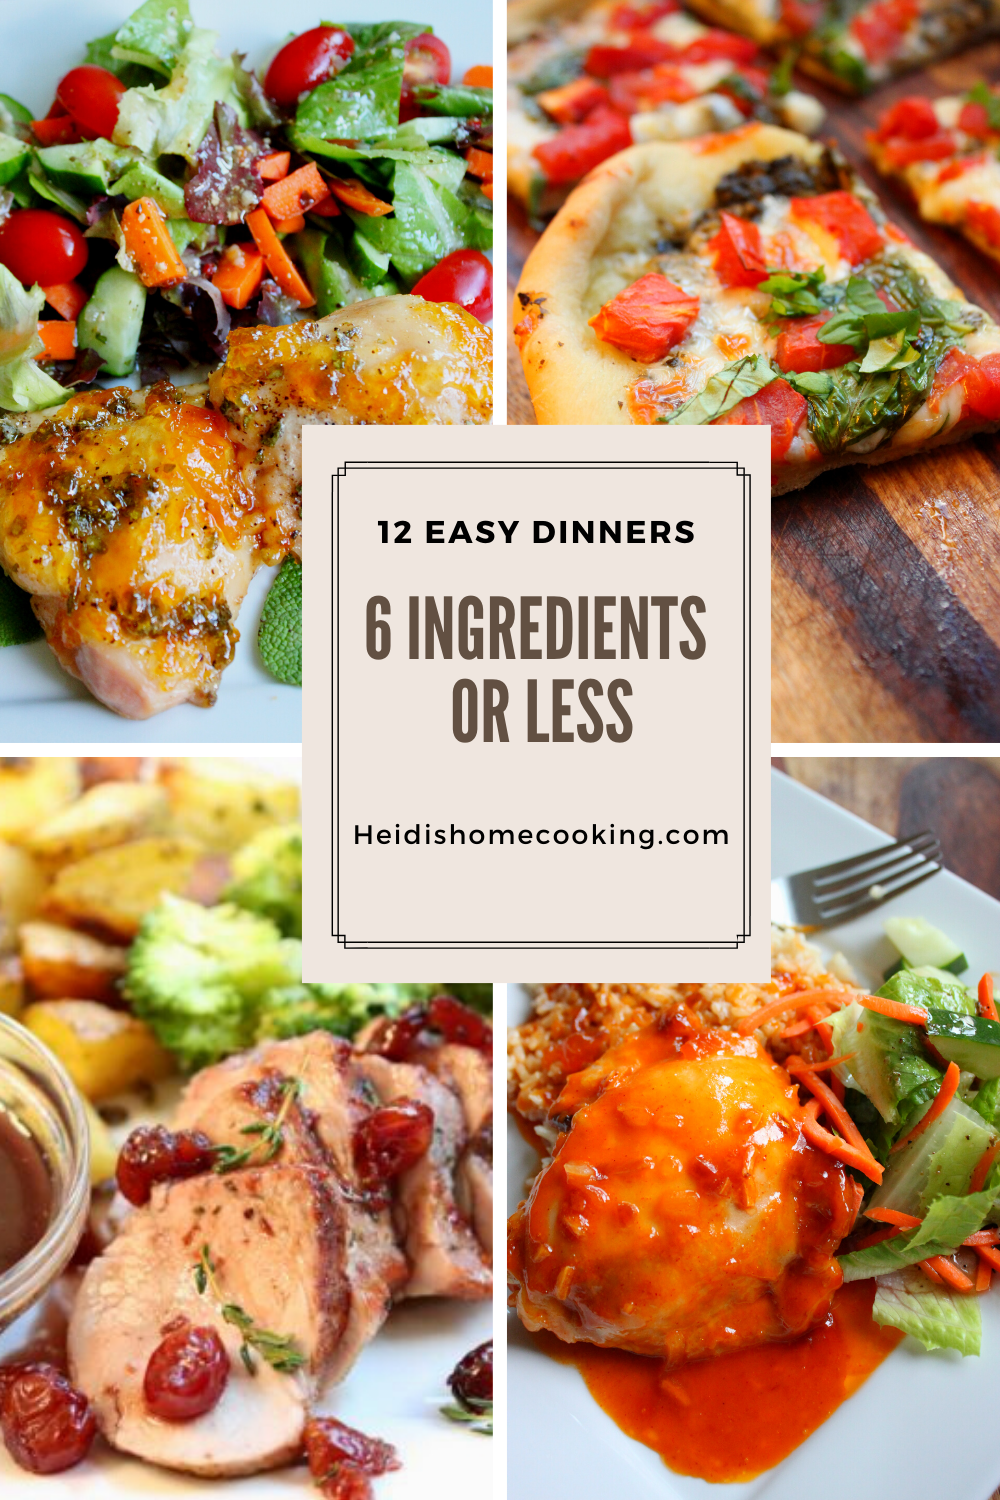 12 easy dinners with 6 ingredients or less